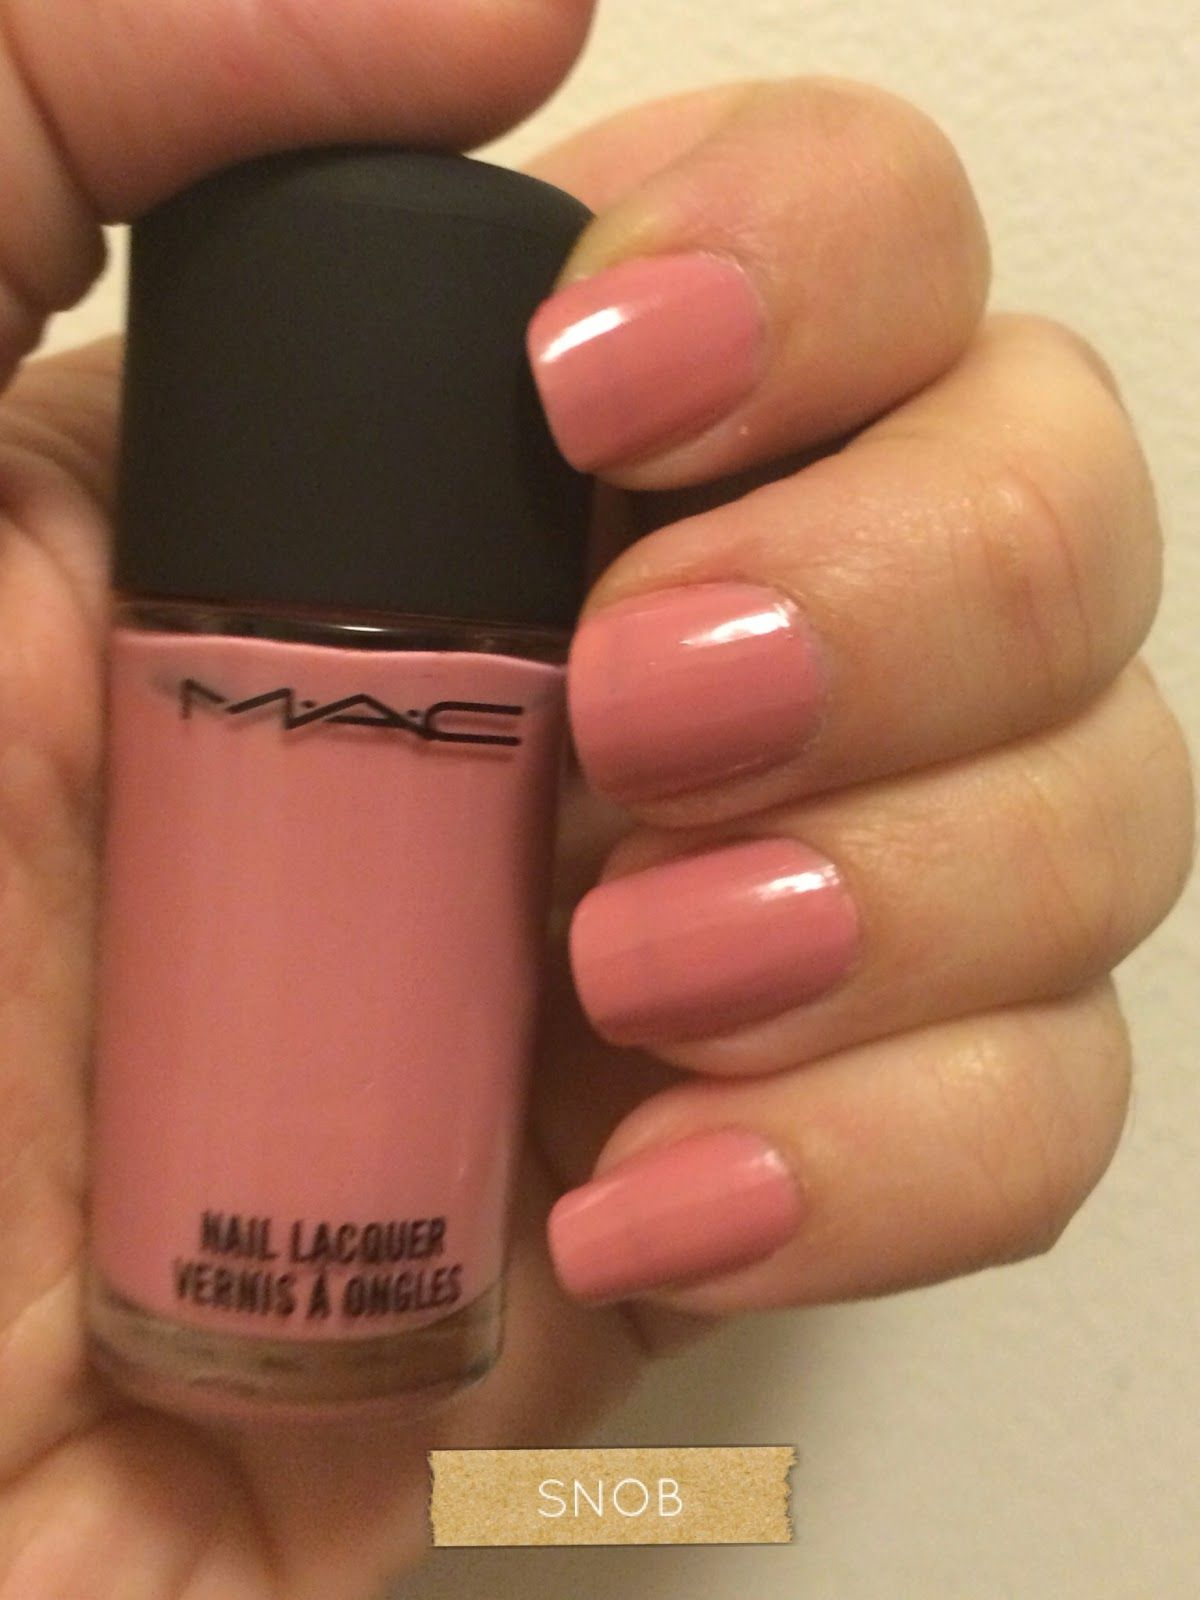 MAC in Snob pink nail polish | Fingers & Toes | Pinterest | Pink ...